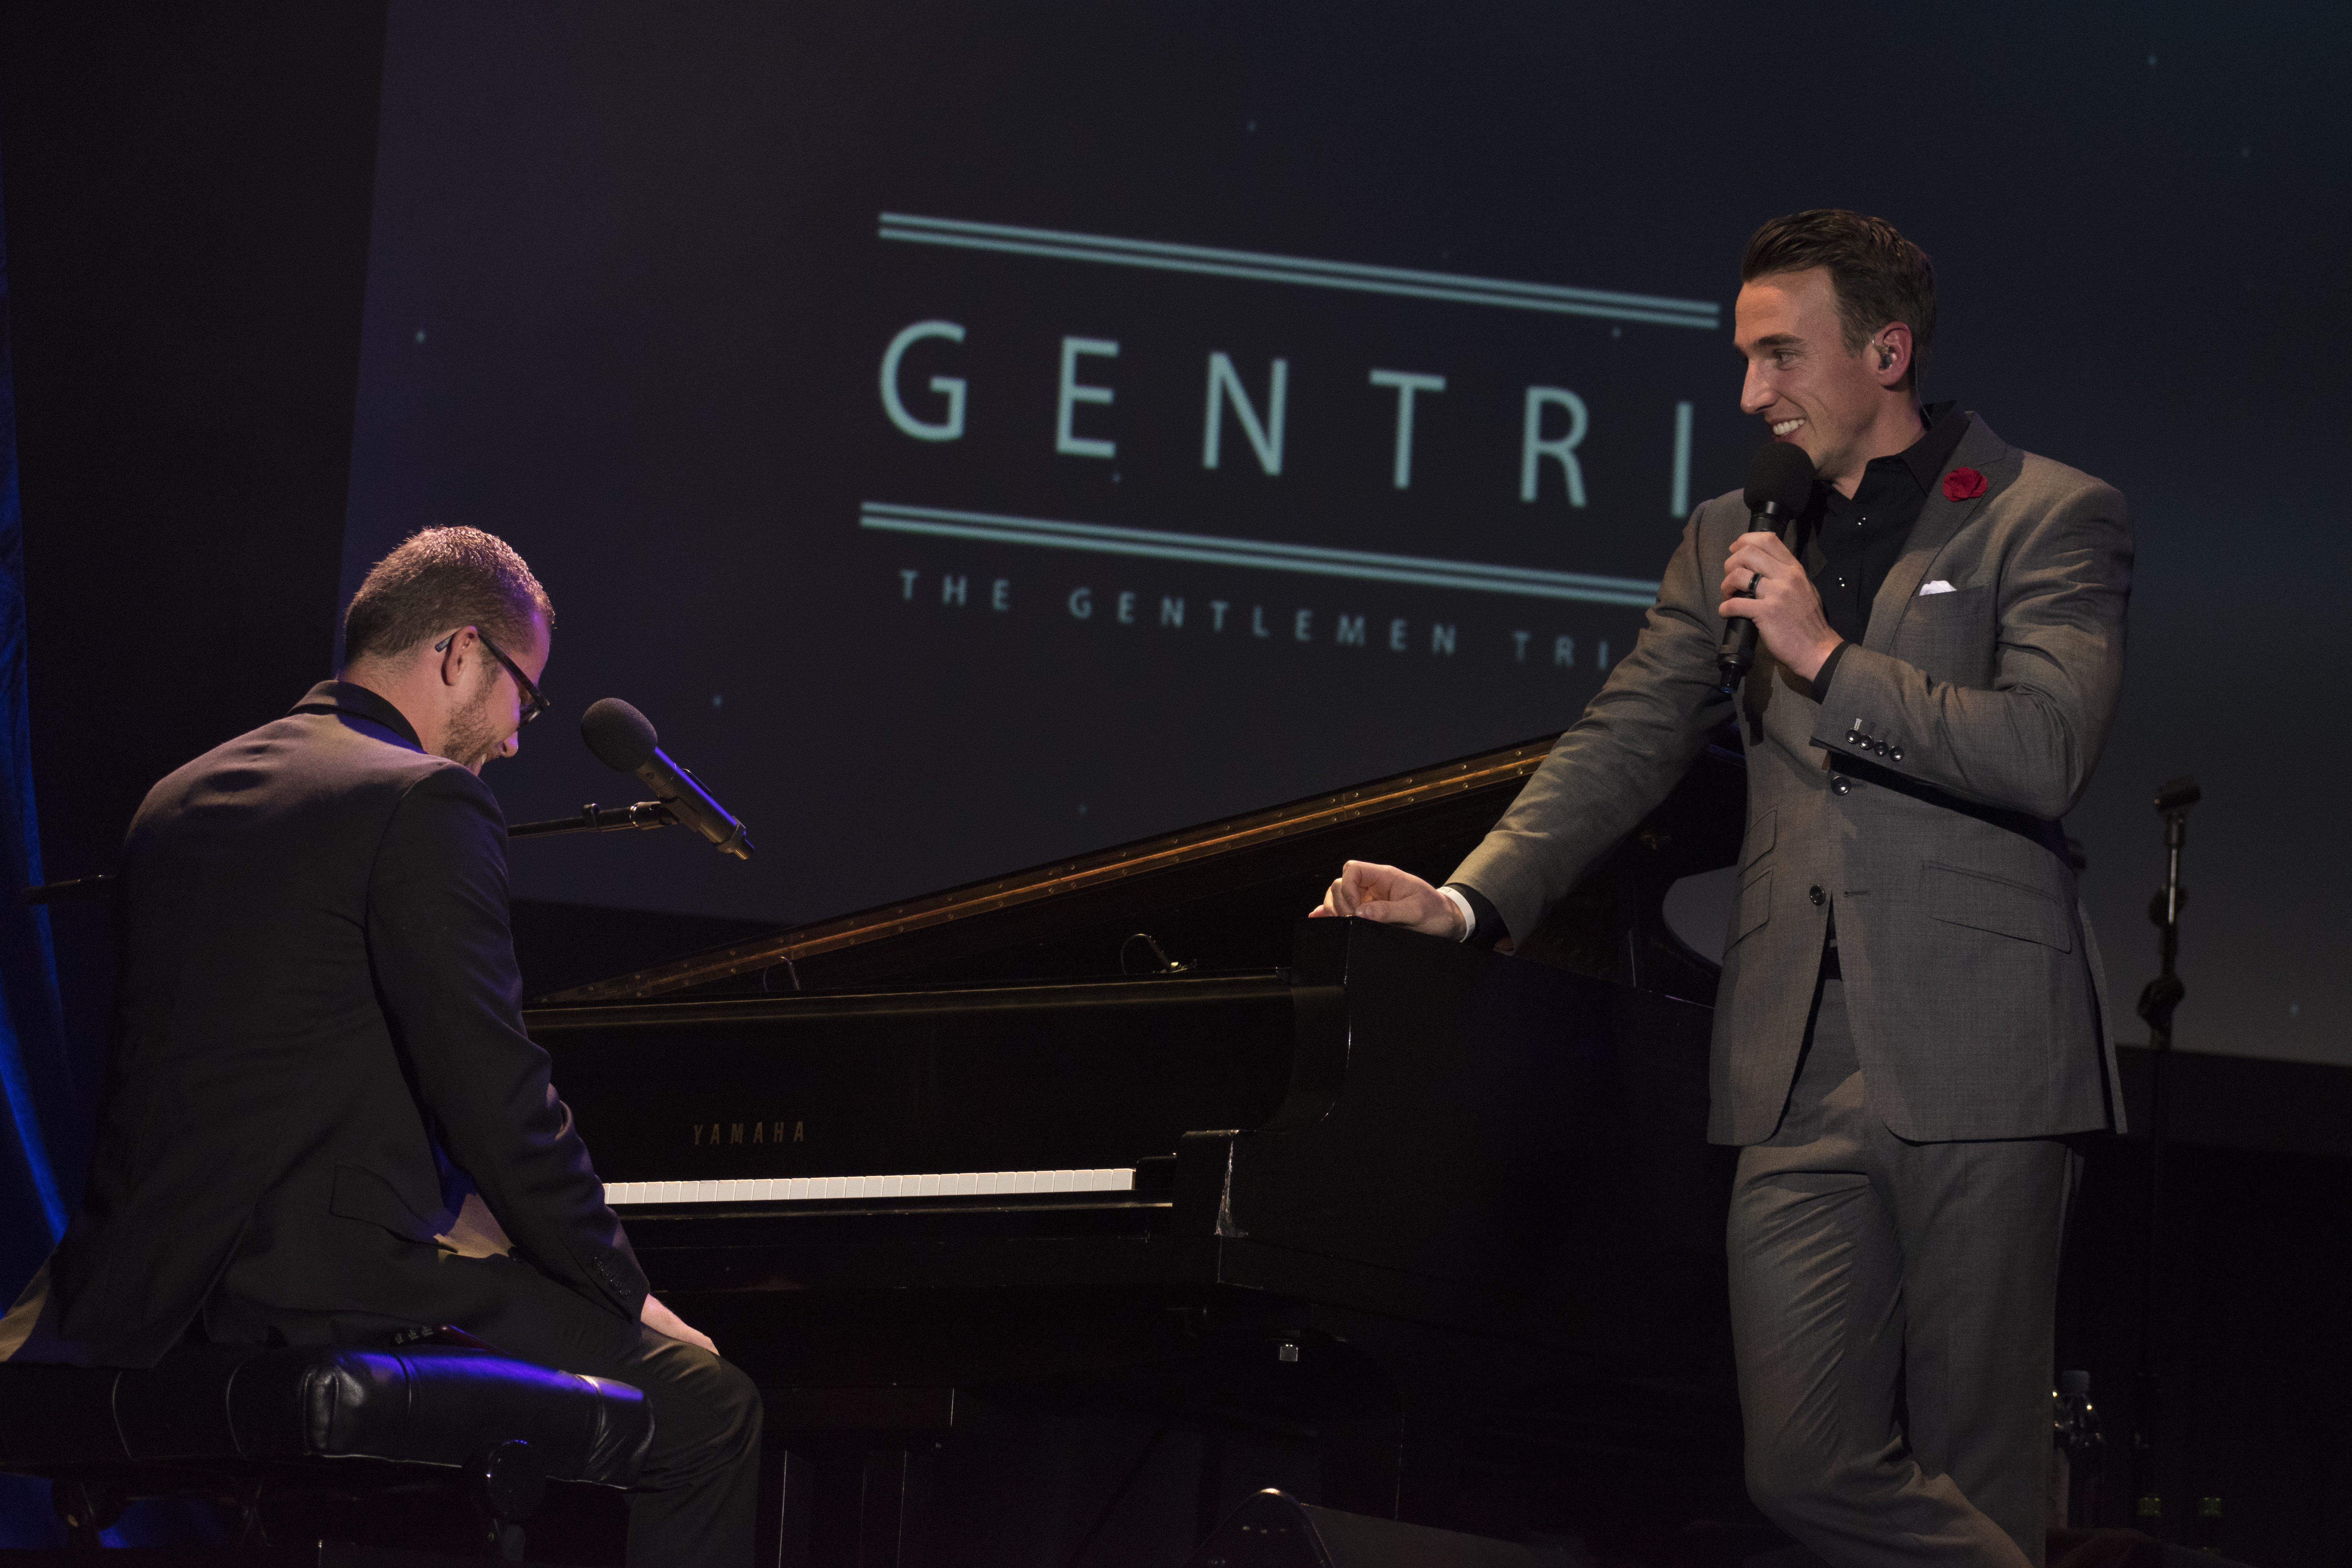 Gentri performs in the Hart Auditorium on Friday, October 13th